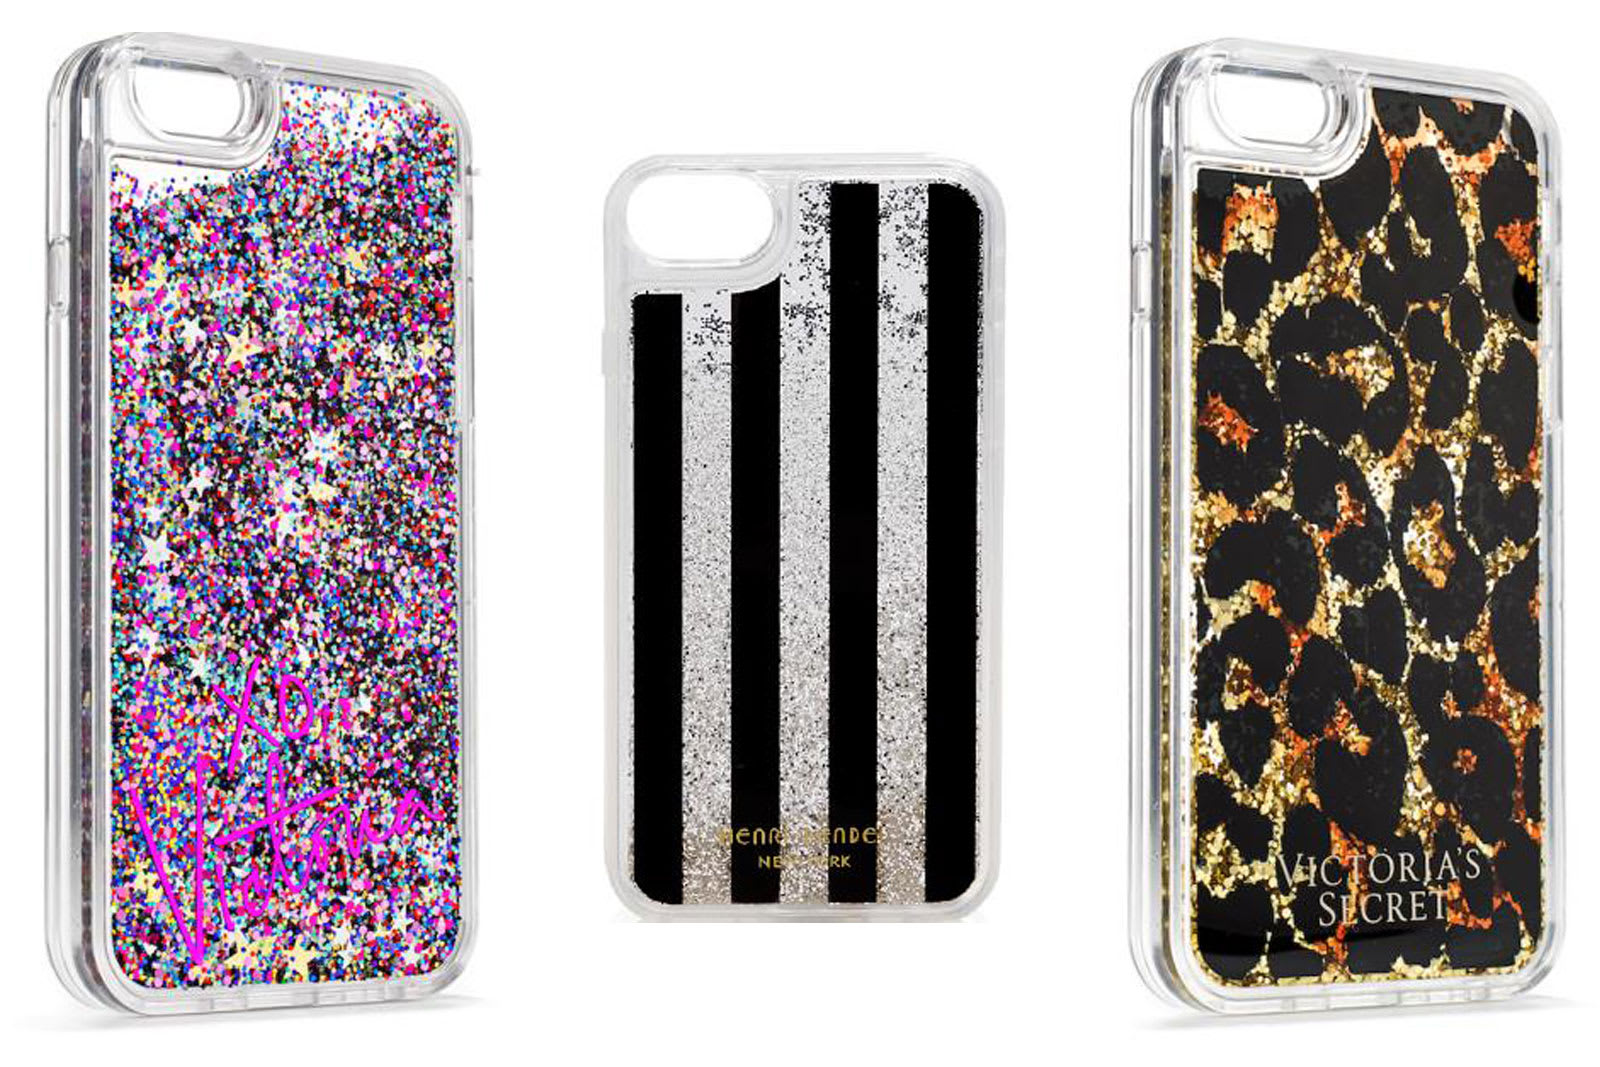 competitive price 85f8c e1451 Glittery iPhone cases recalled after reports of chemical burns